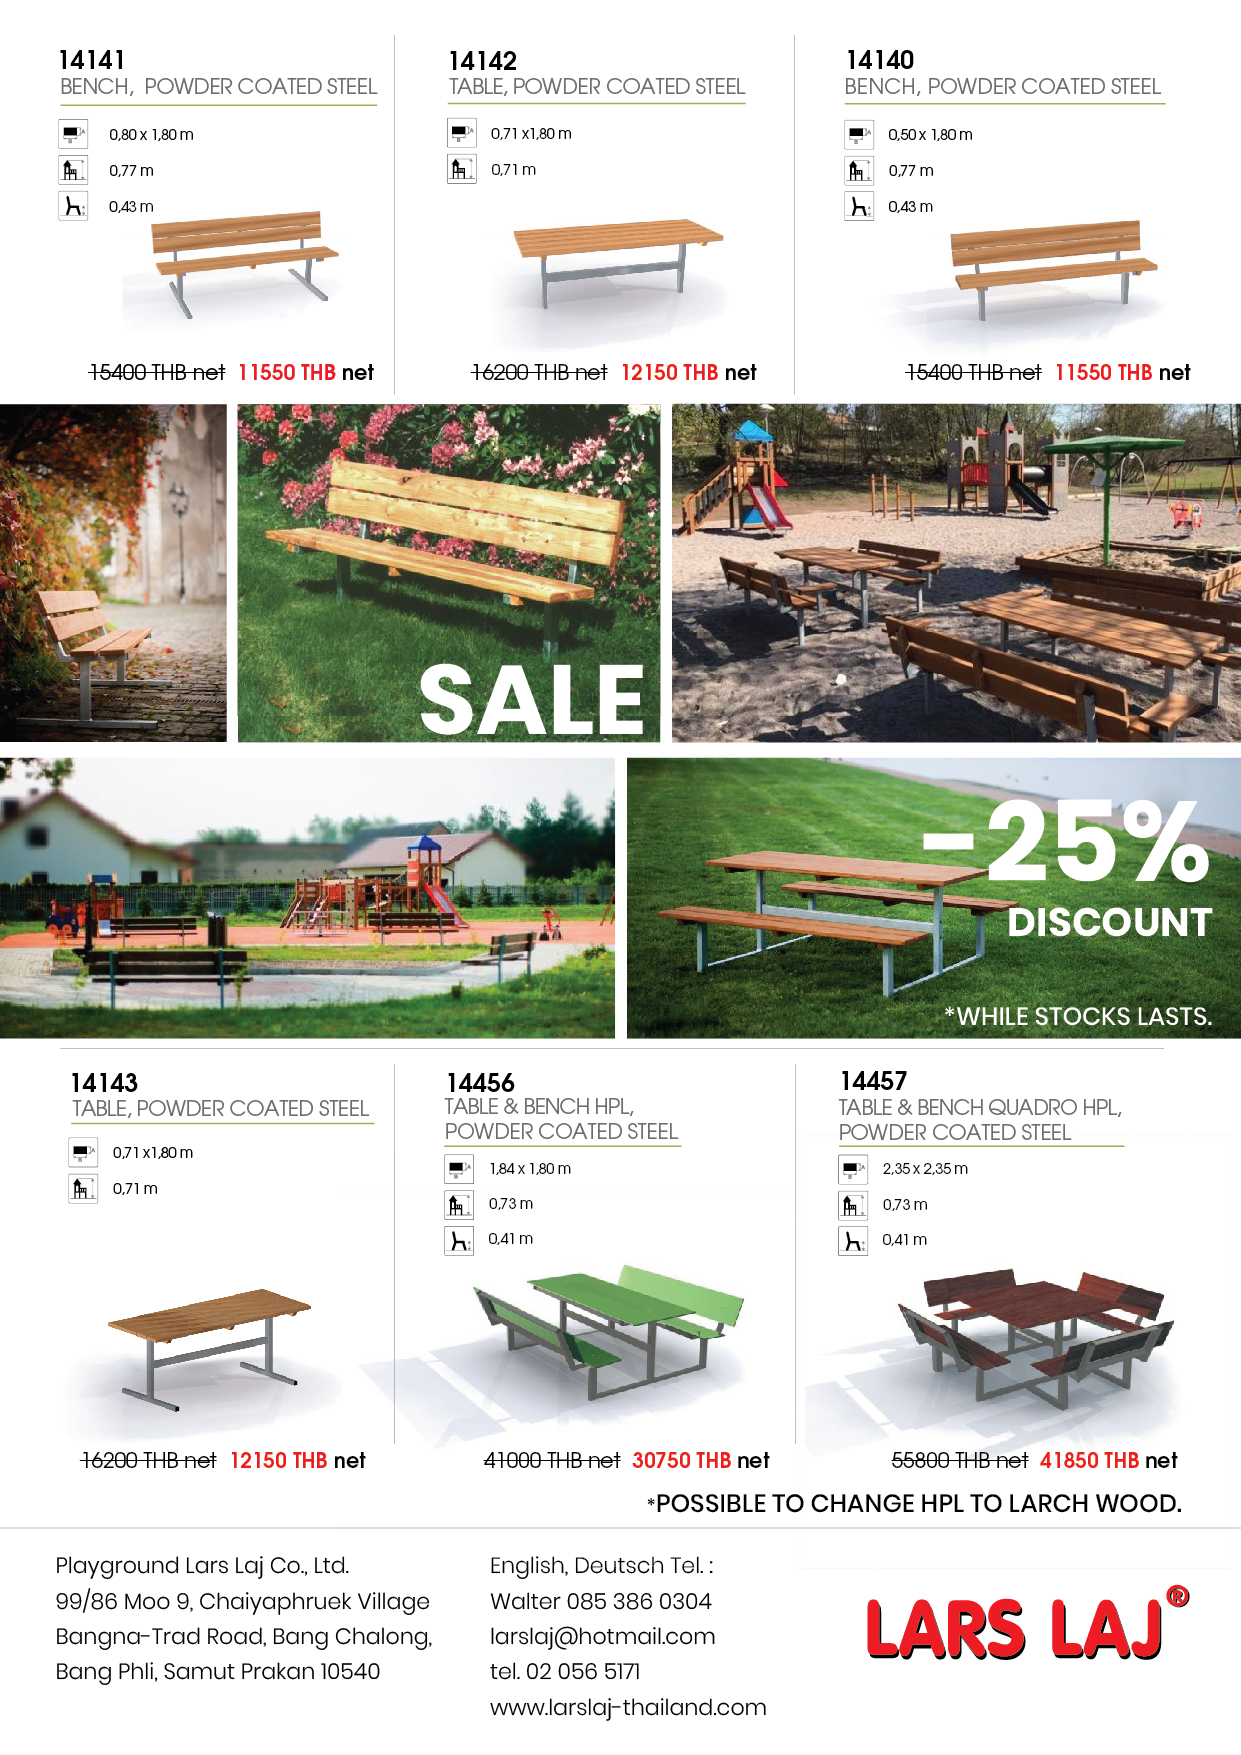 25% discount for tables and benches